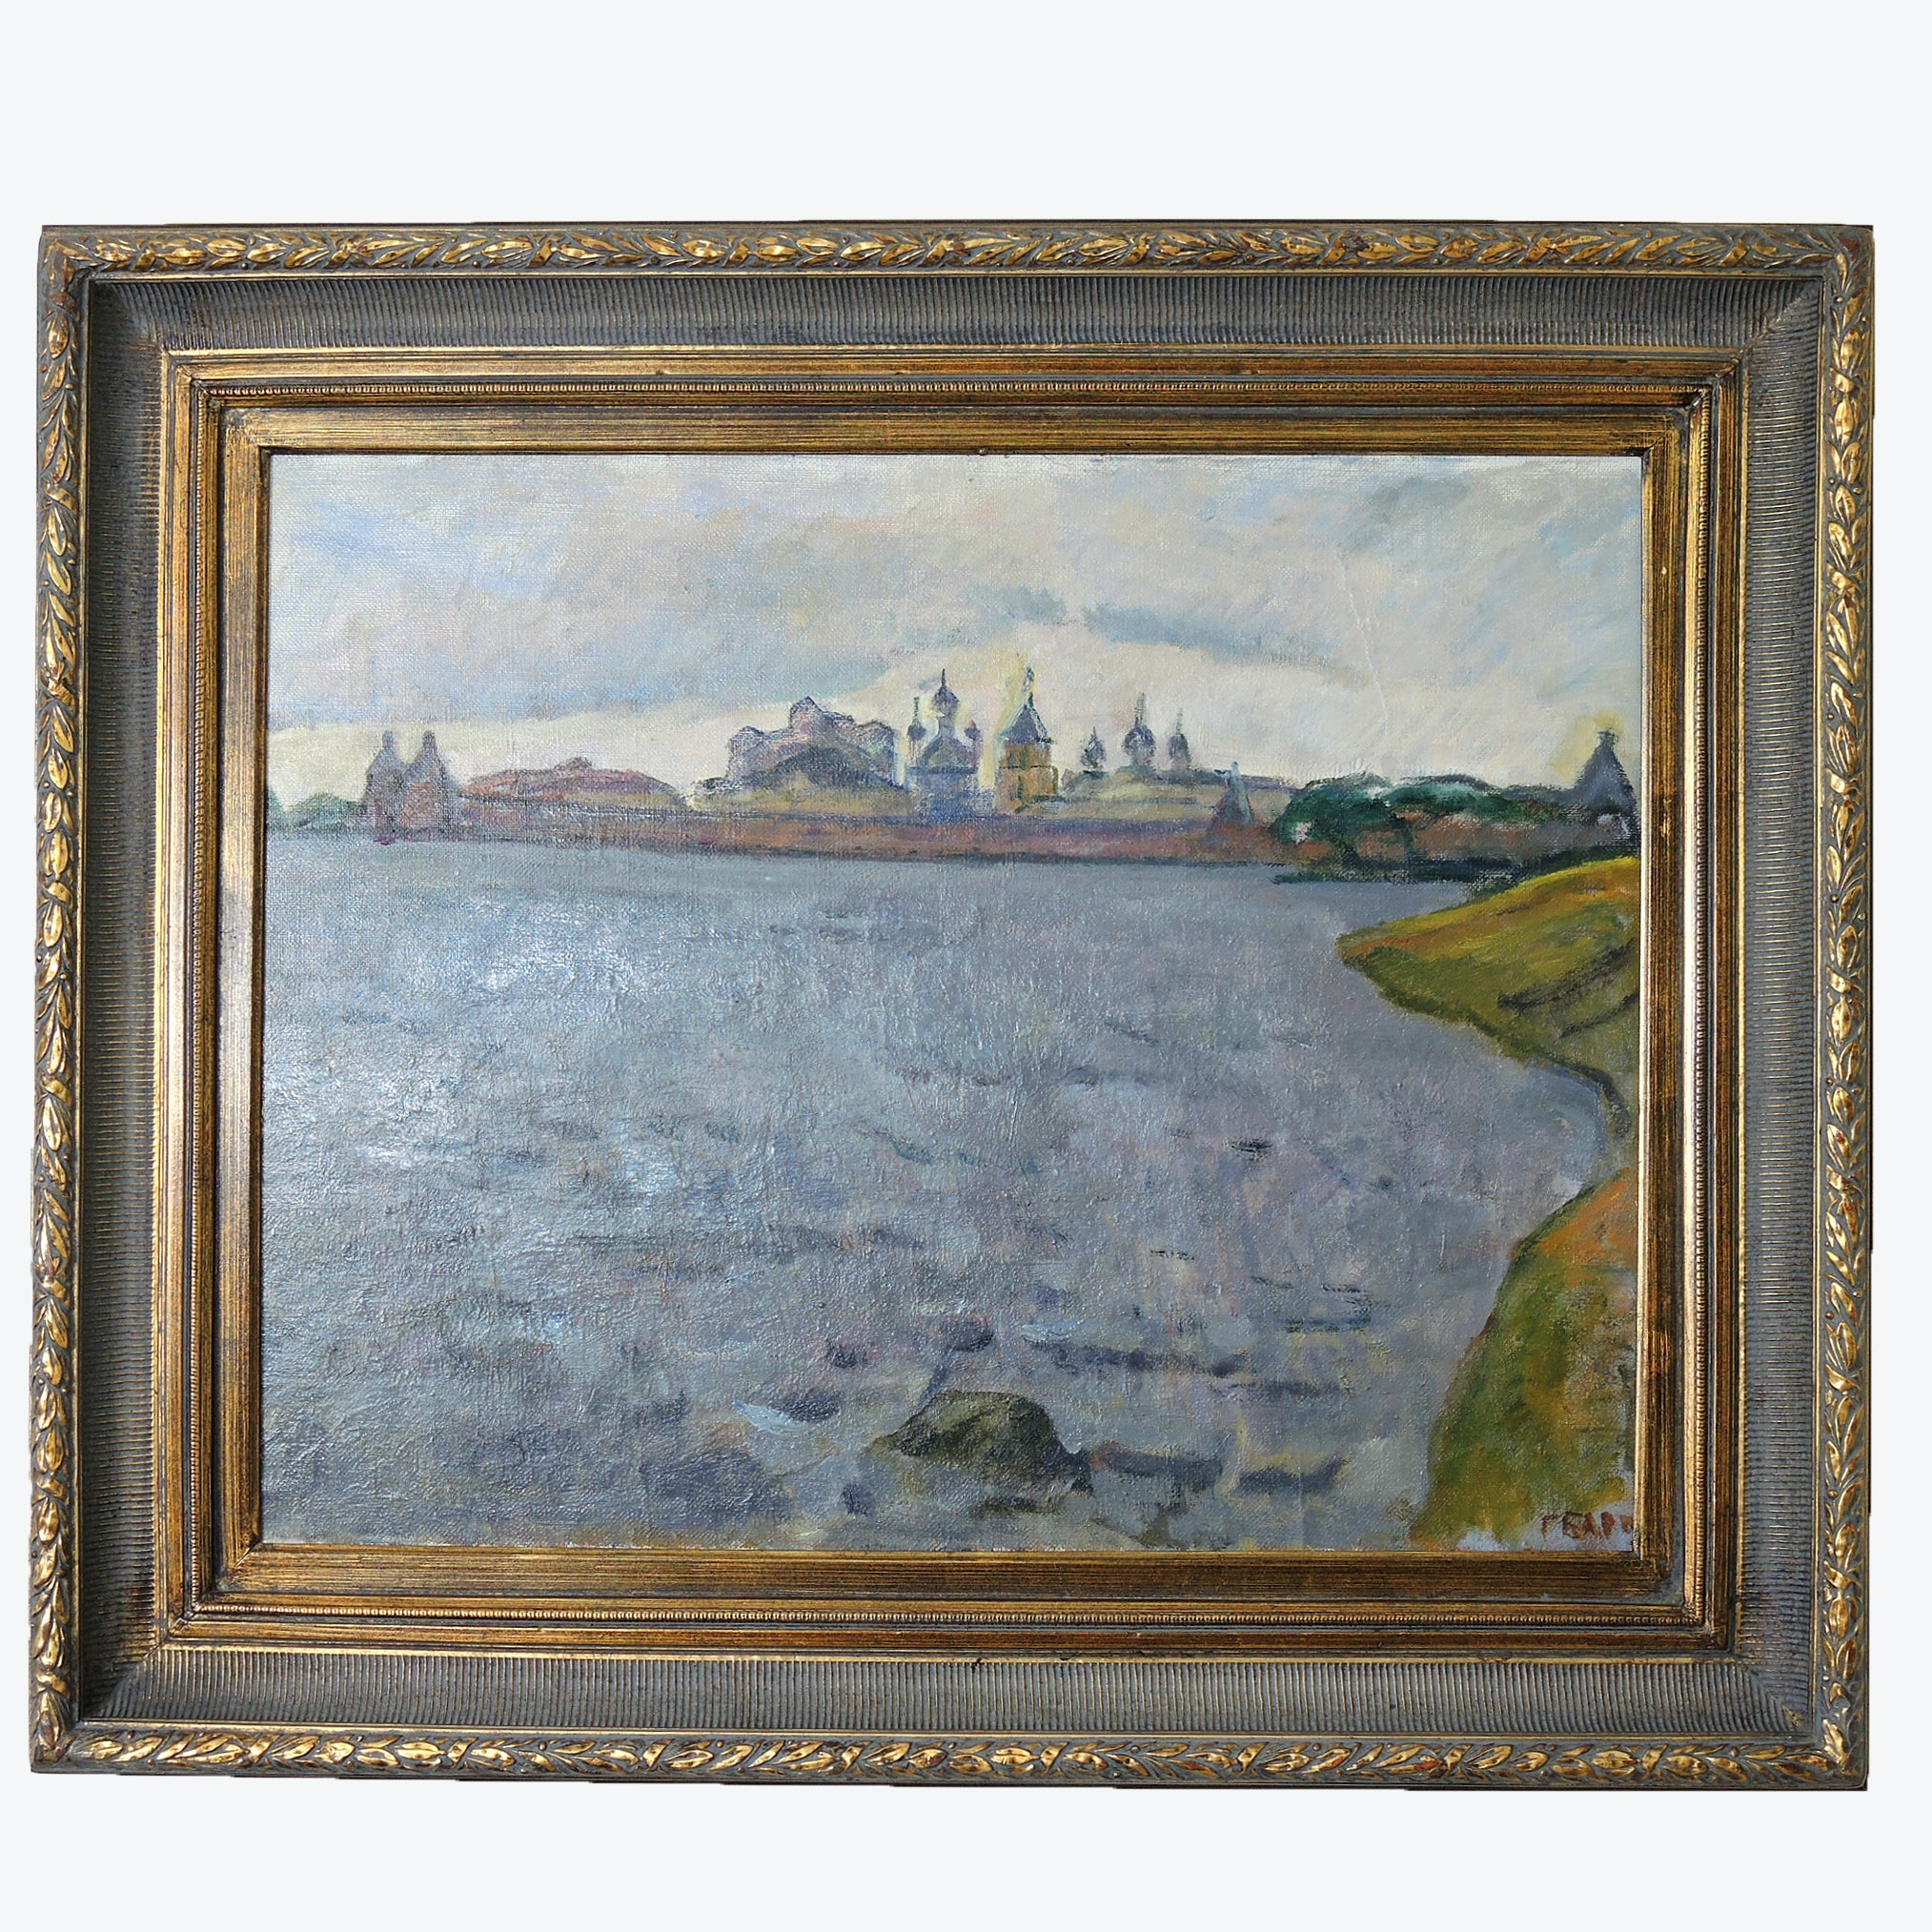 Original Painting of Solovetsky Monastery by G. Barsch